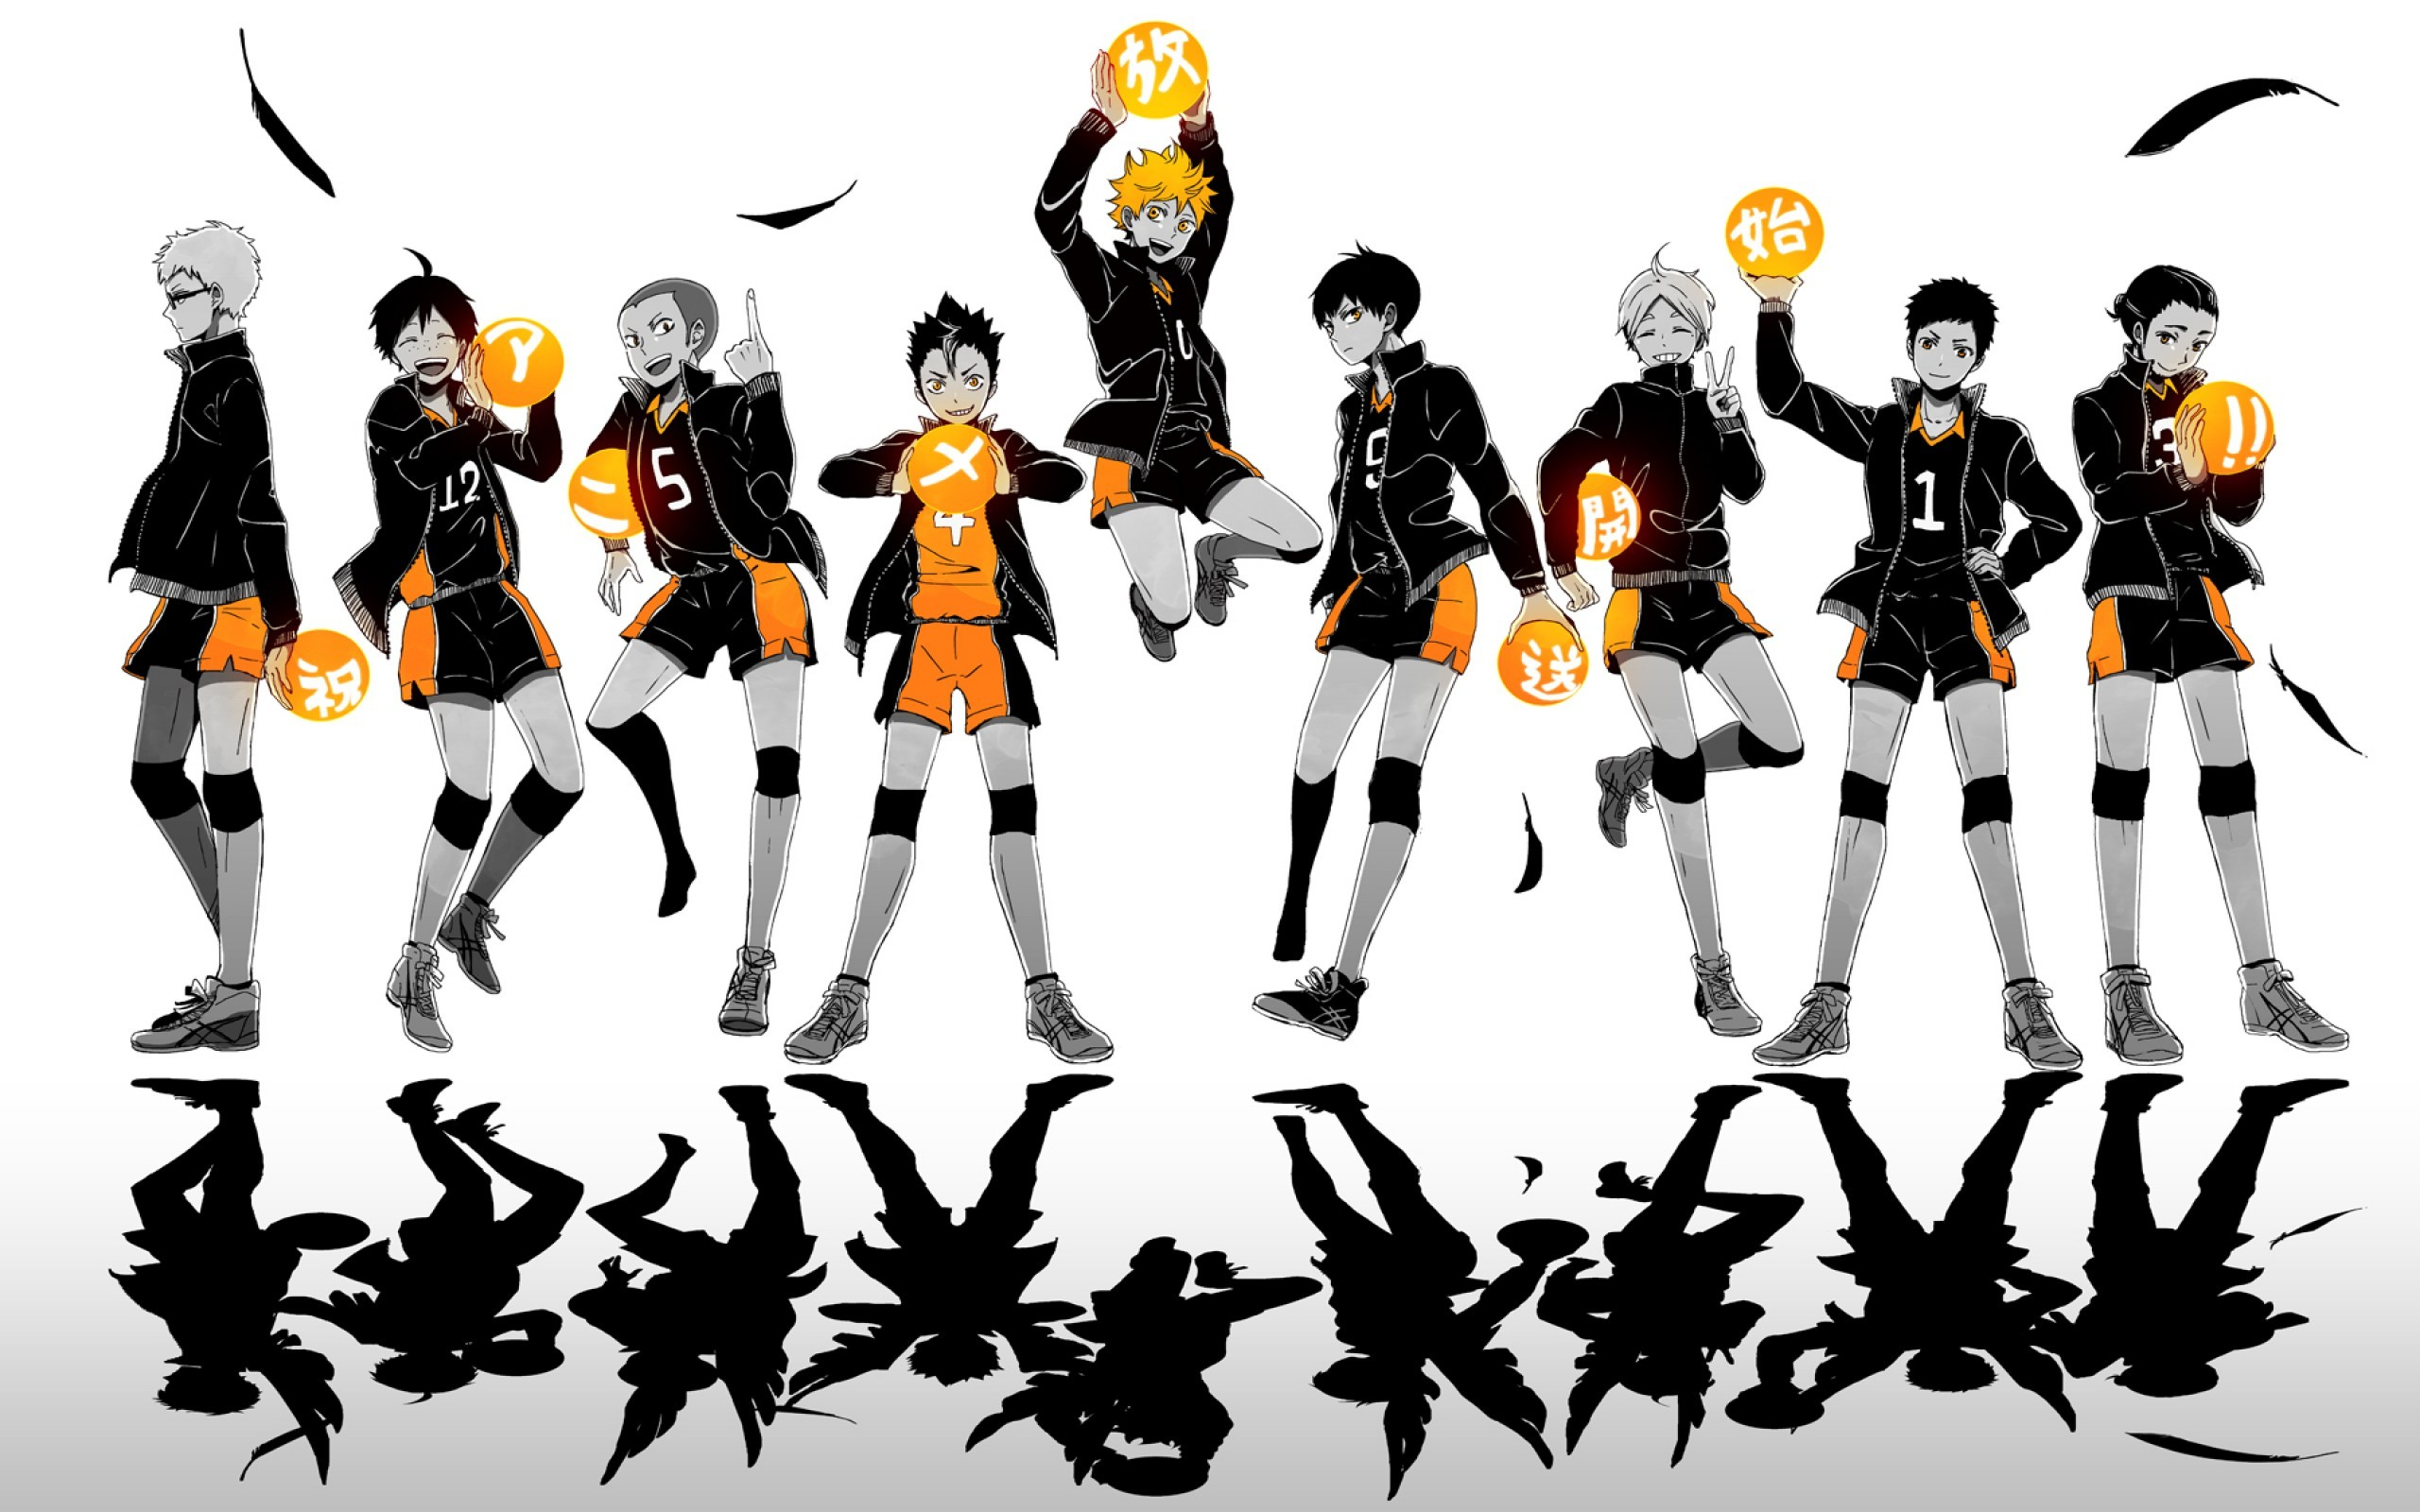 Haikyuu Wallpaper Download Free Cool High Resolution Wallpapers